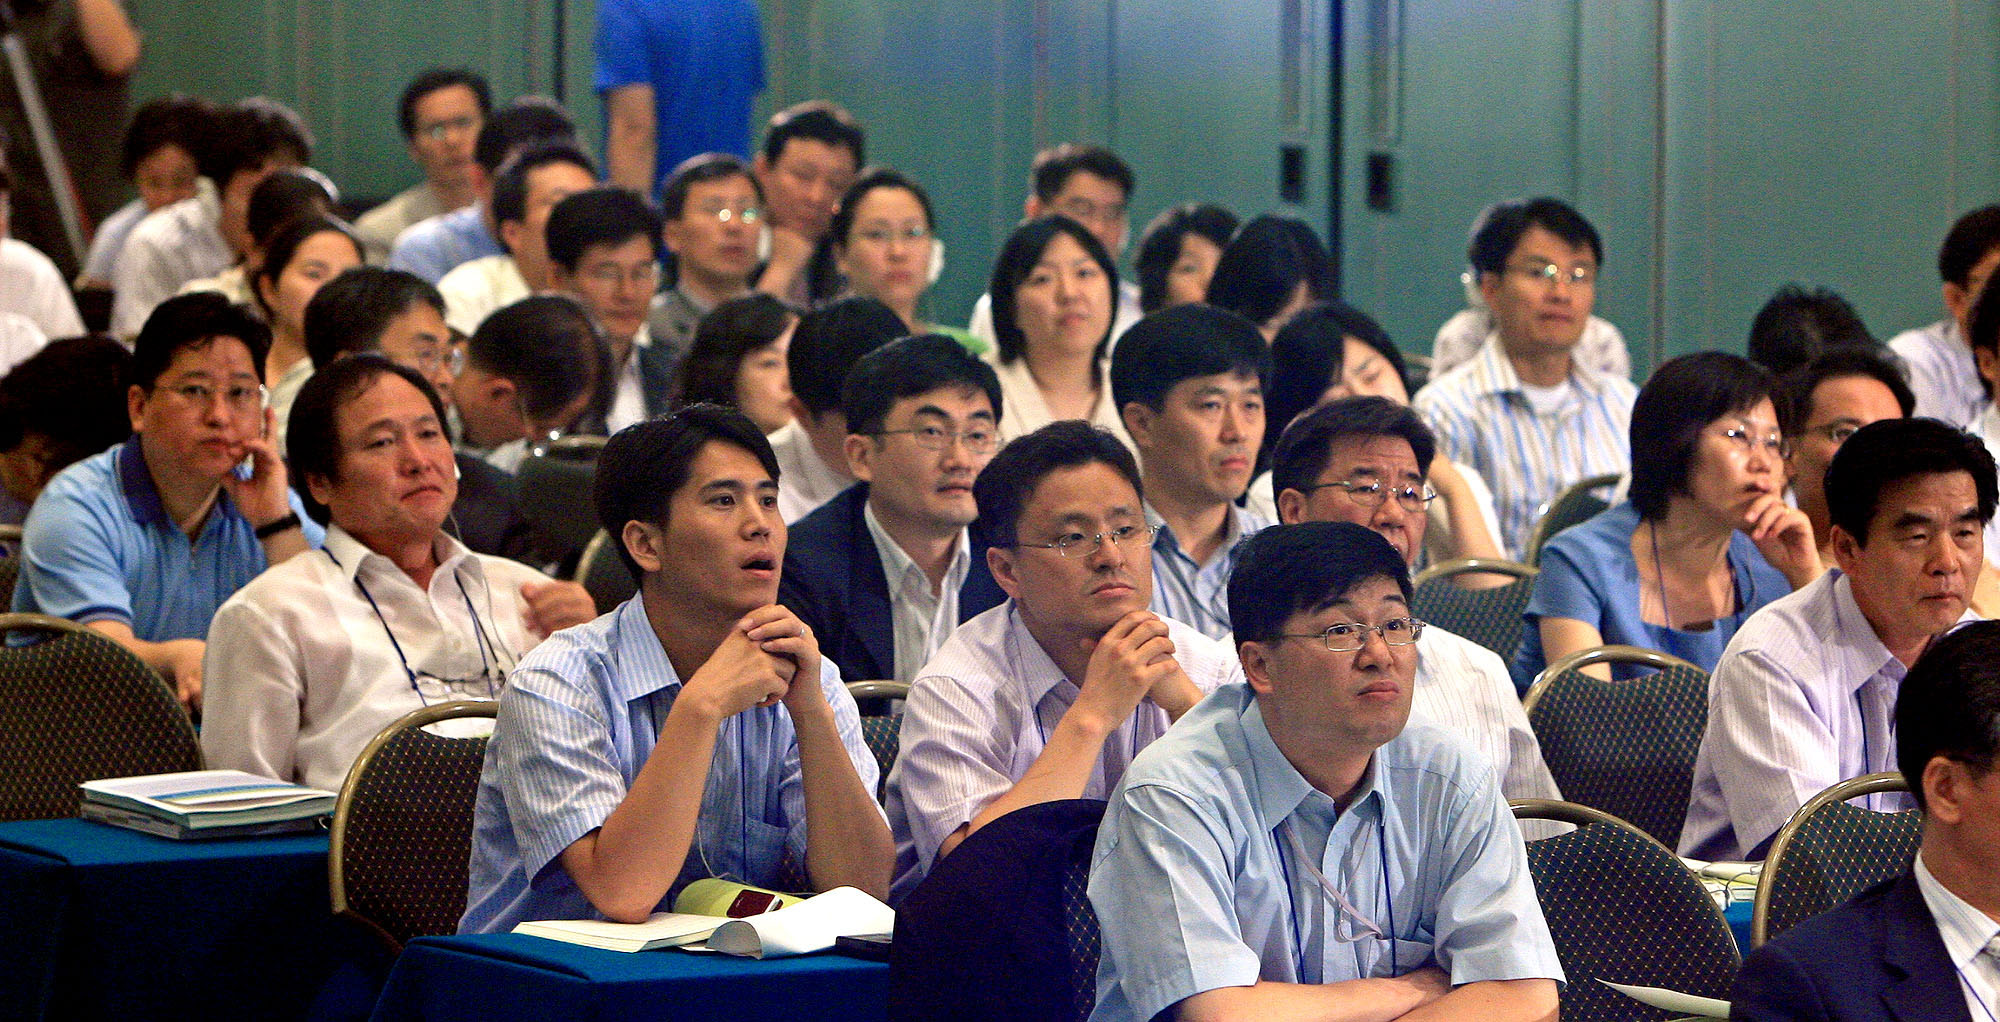 Employees of the Korea Electric Power Corporation listen to details about the company's new wage peak system on Jan. 14, 2015.